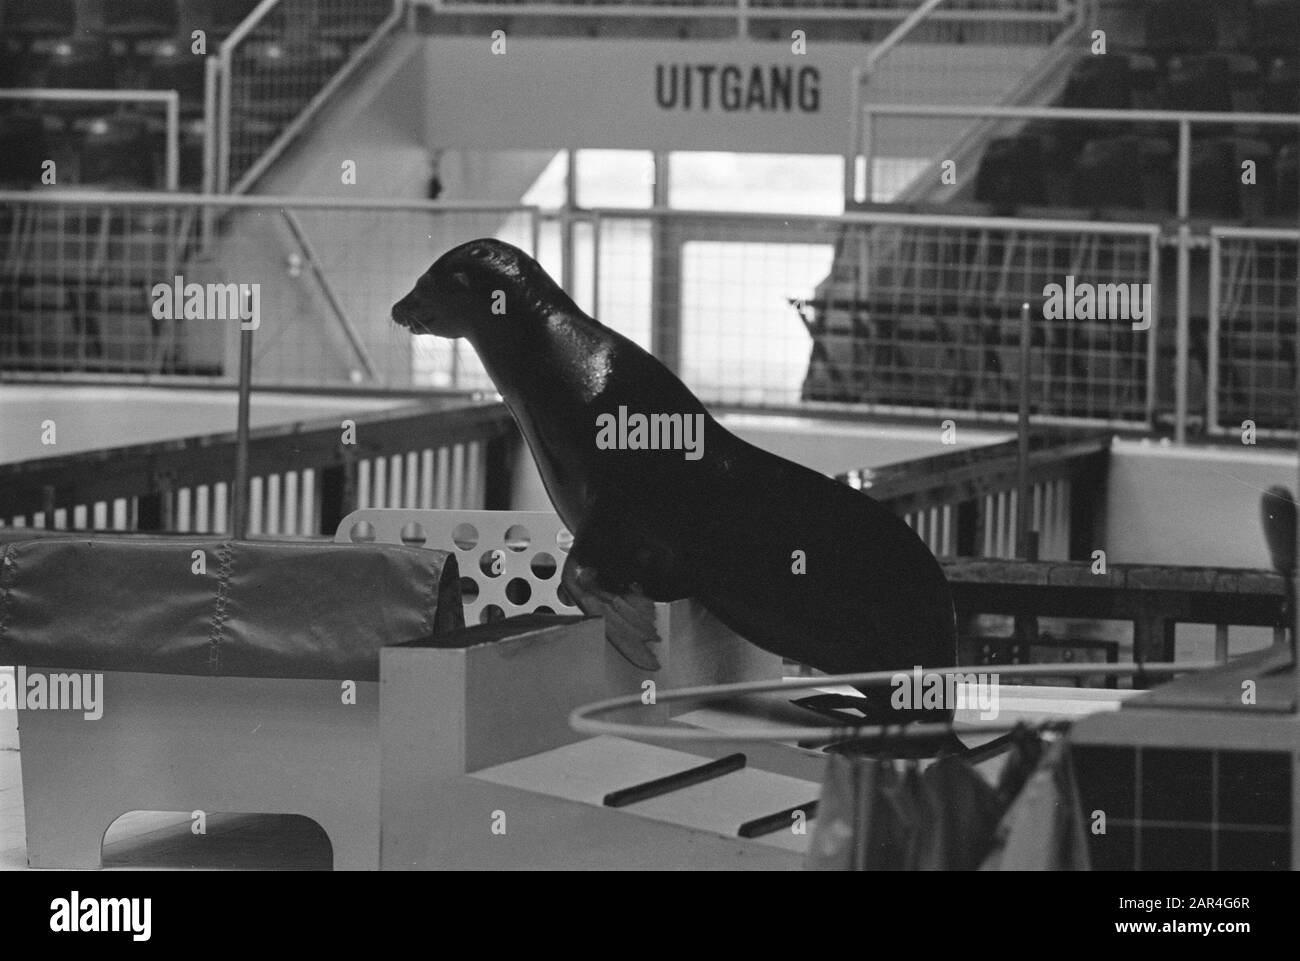 Dolfinarium, Harderwijk; lots of dolphins audience Date: June 11, 1970 Location: Harderwijk Keywords: DOLFINARIUM Stock Photo